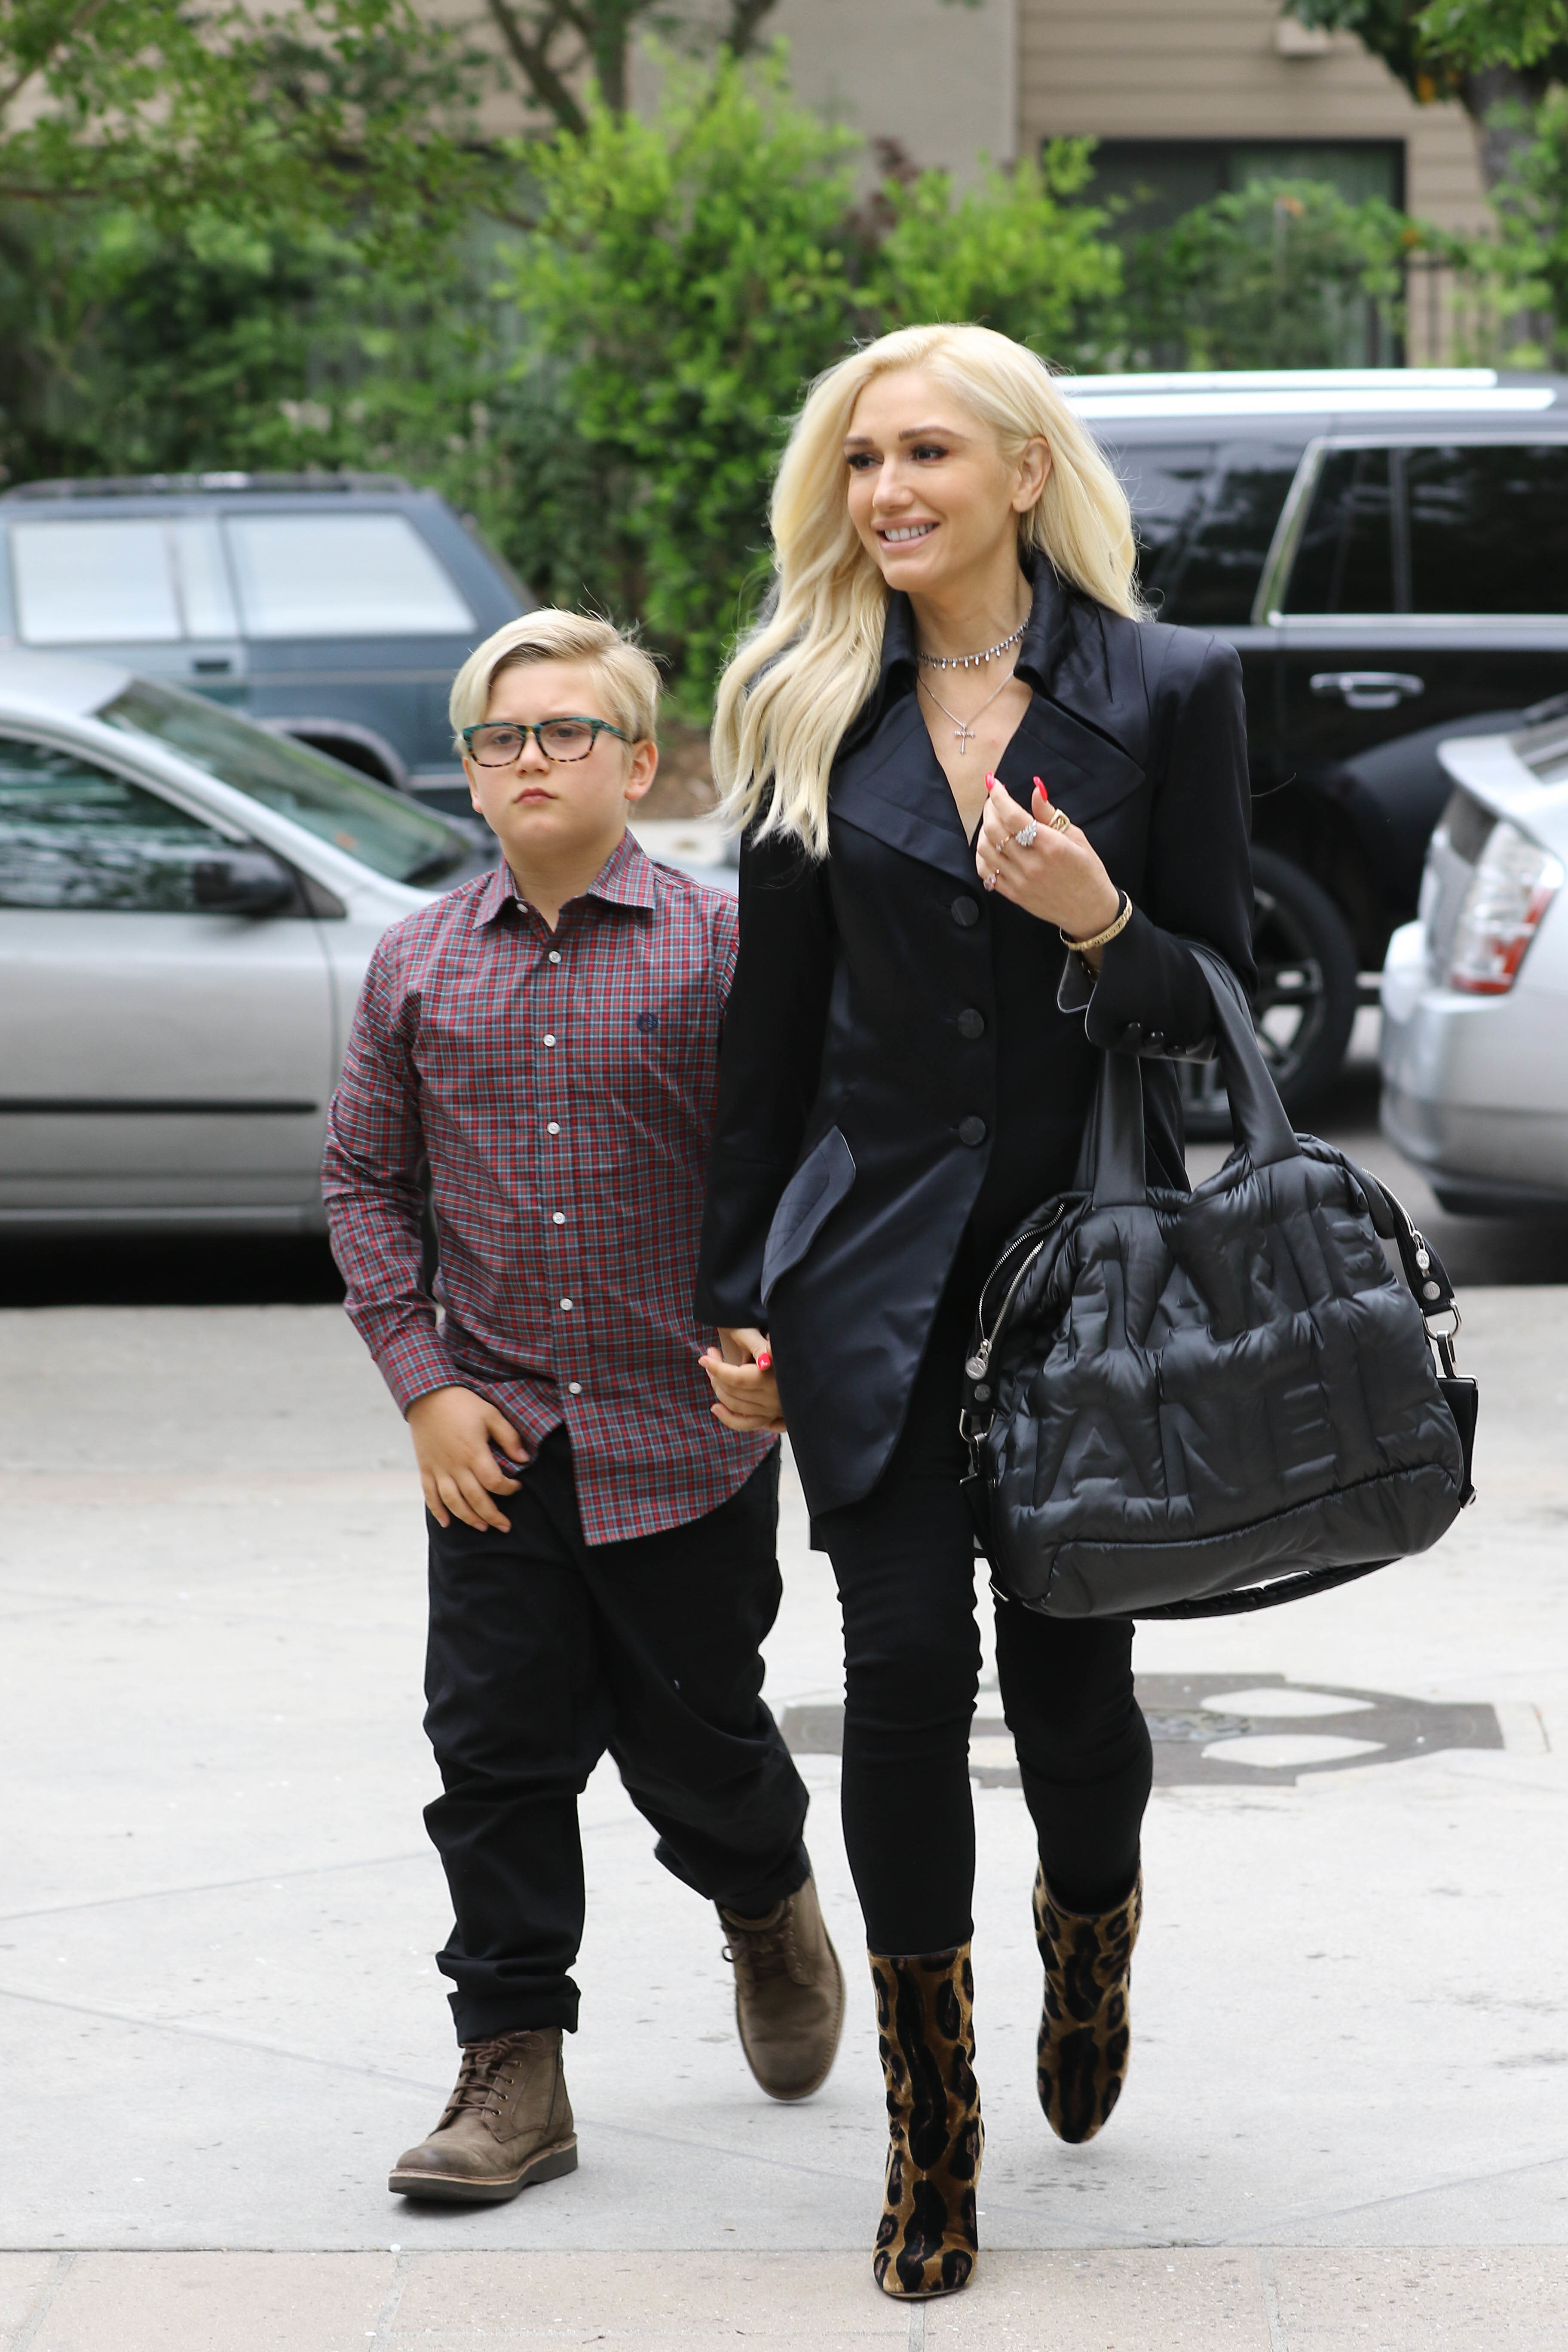 Gwen Stefani heads to church on Mother's Day with her boyfriend Blake Shelton and her children, Zuma Rossdale (pictured), Kingston Rossdale, and Apollo Rossdale, in Los Angeles, Calif., on May 13, 2018.